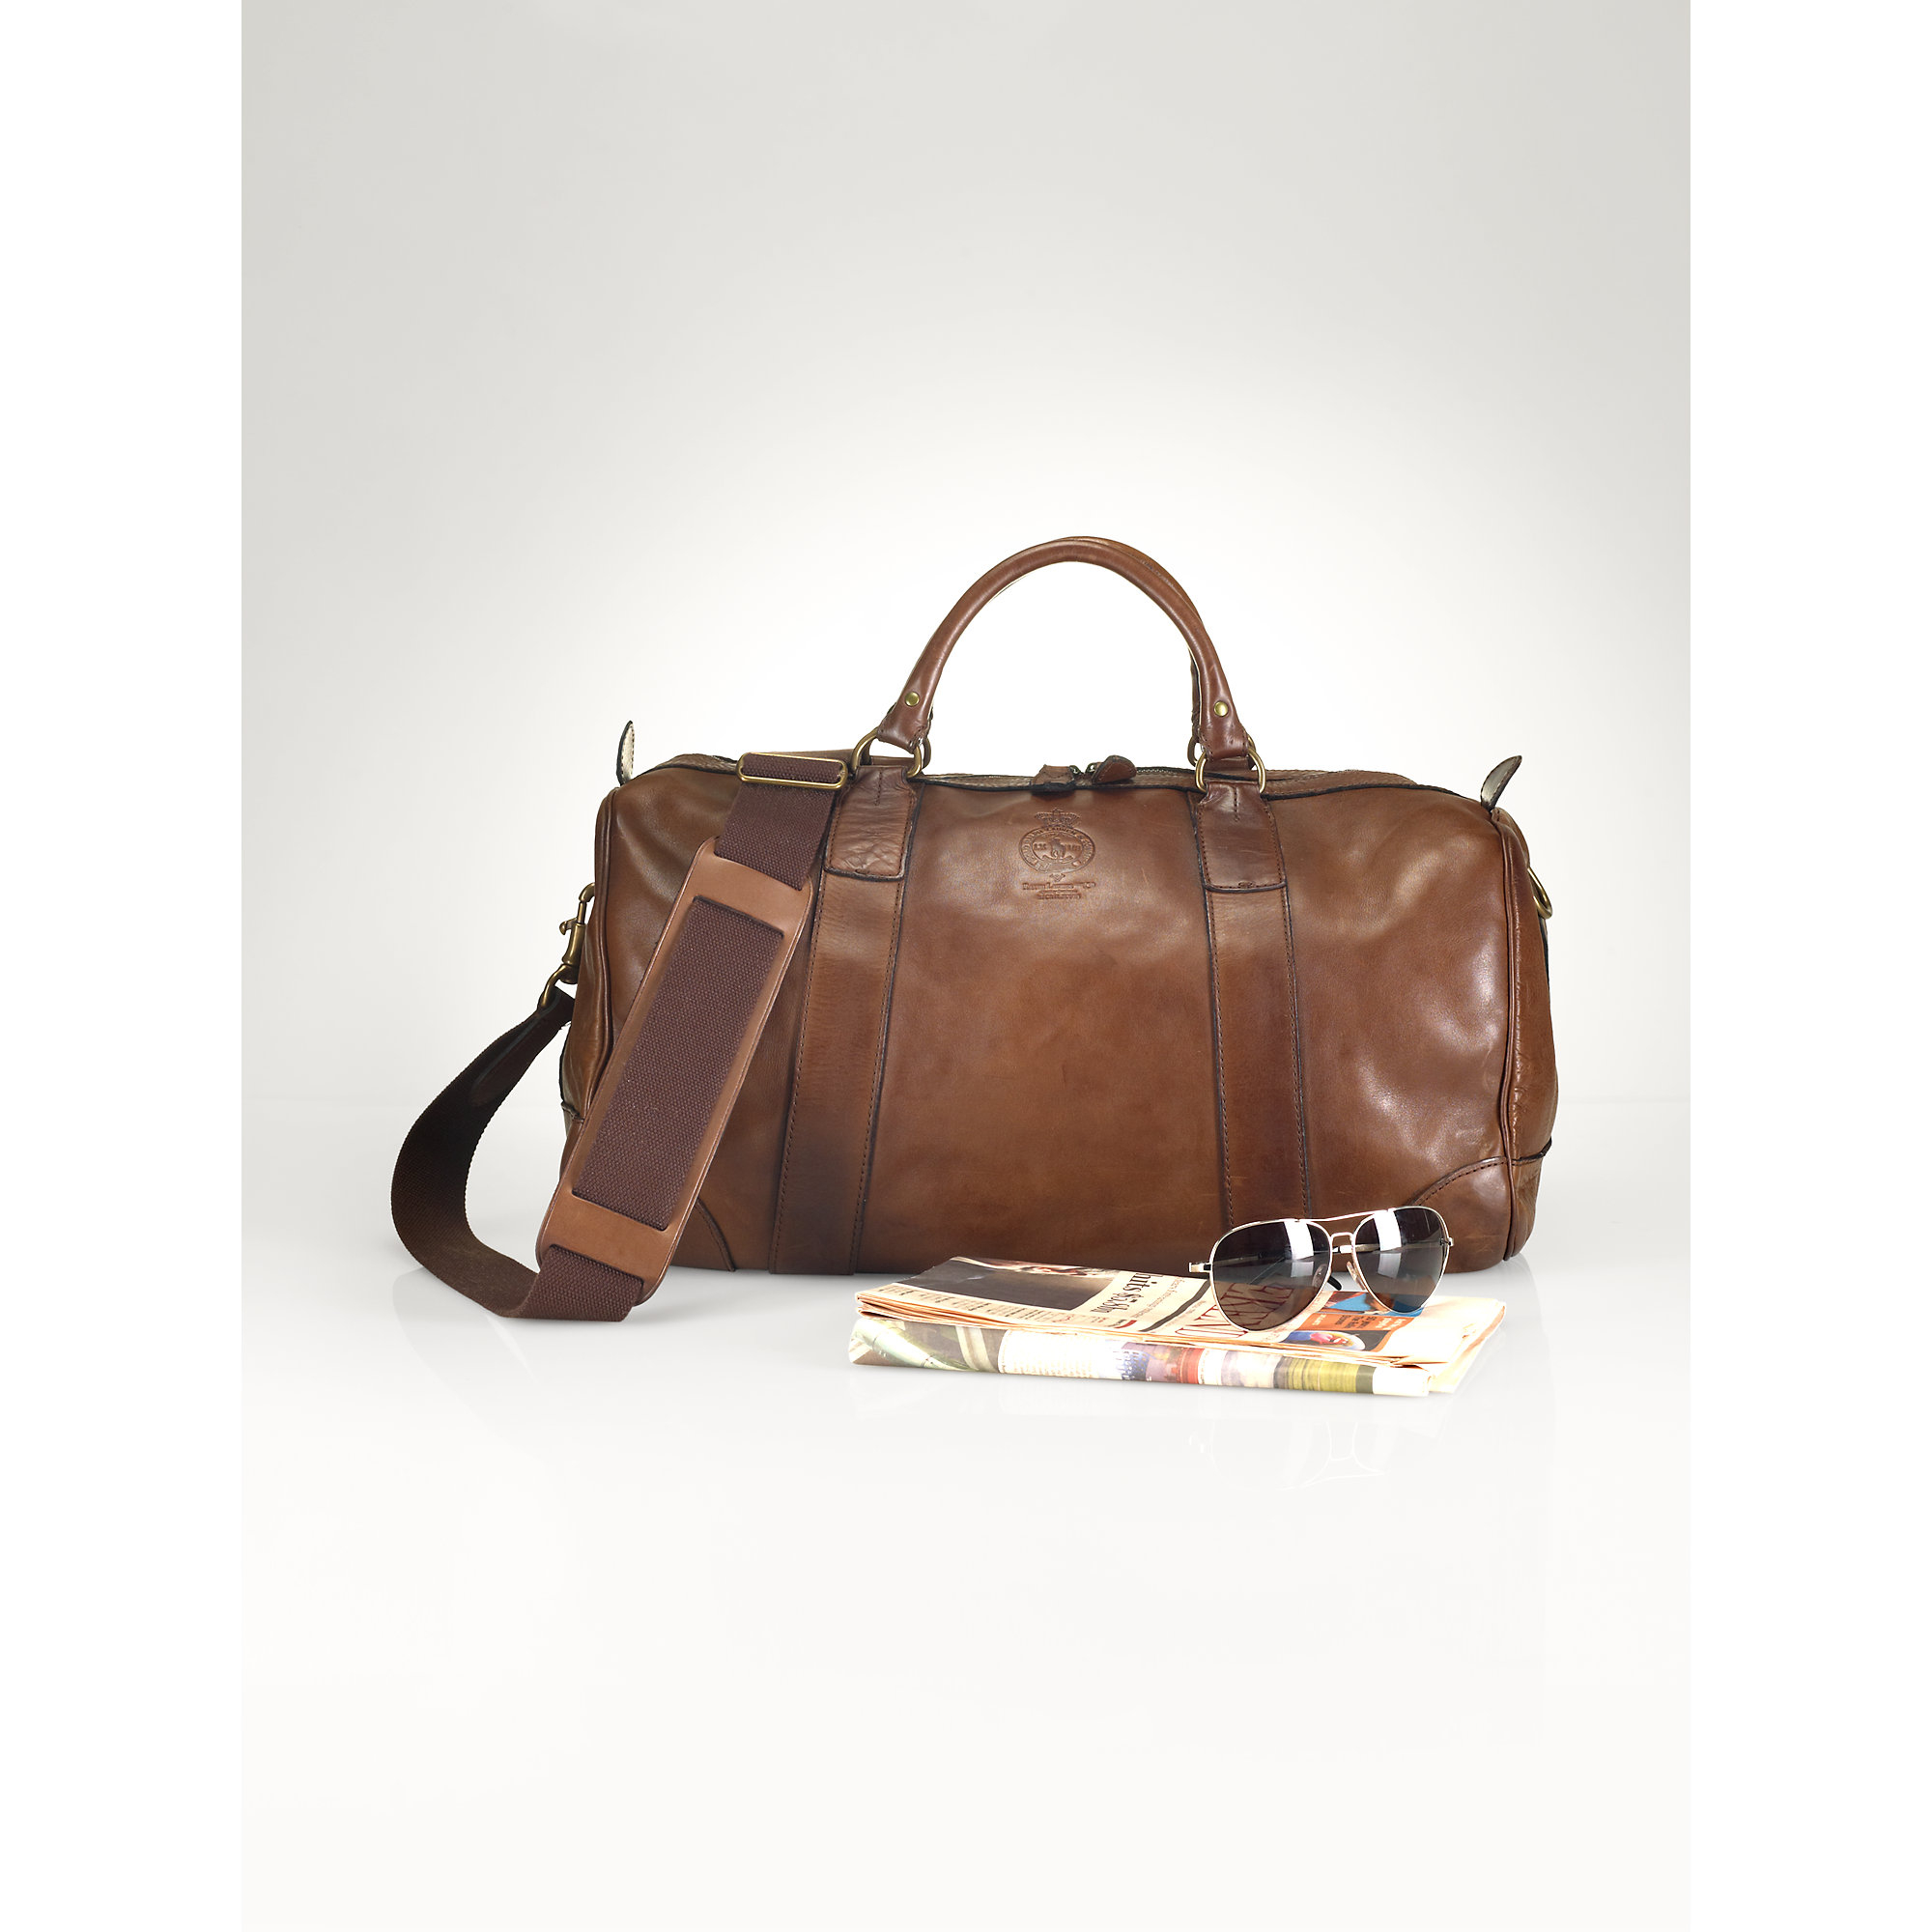 Lyst - Polo Ralph Lauren Leather Duffel Bag in Brown for Men 3cc88d40c5